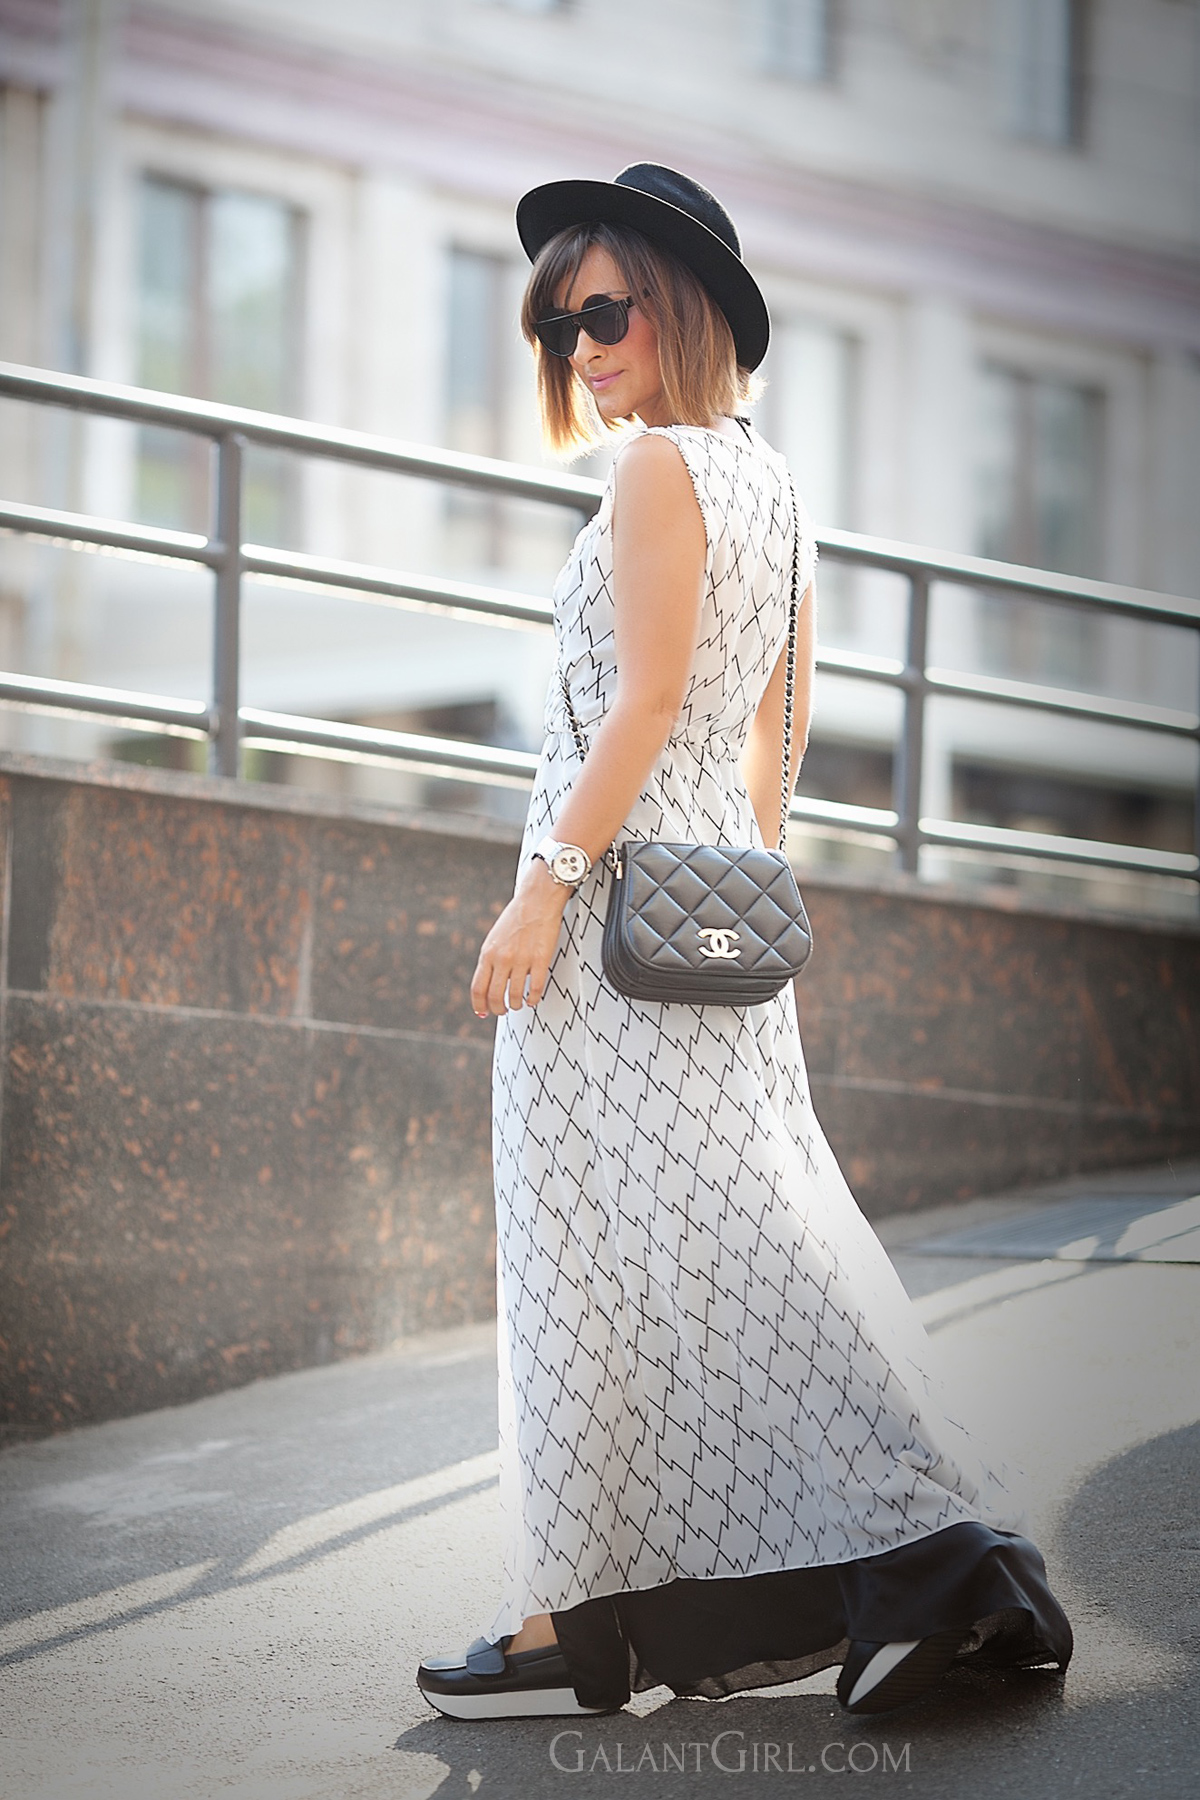 maxi-dress-for-stylish-autumn-outfit-streetstyle-blogger-galant-girl